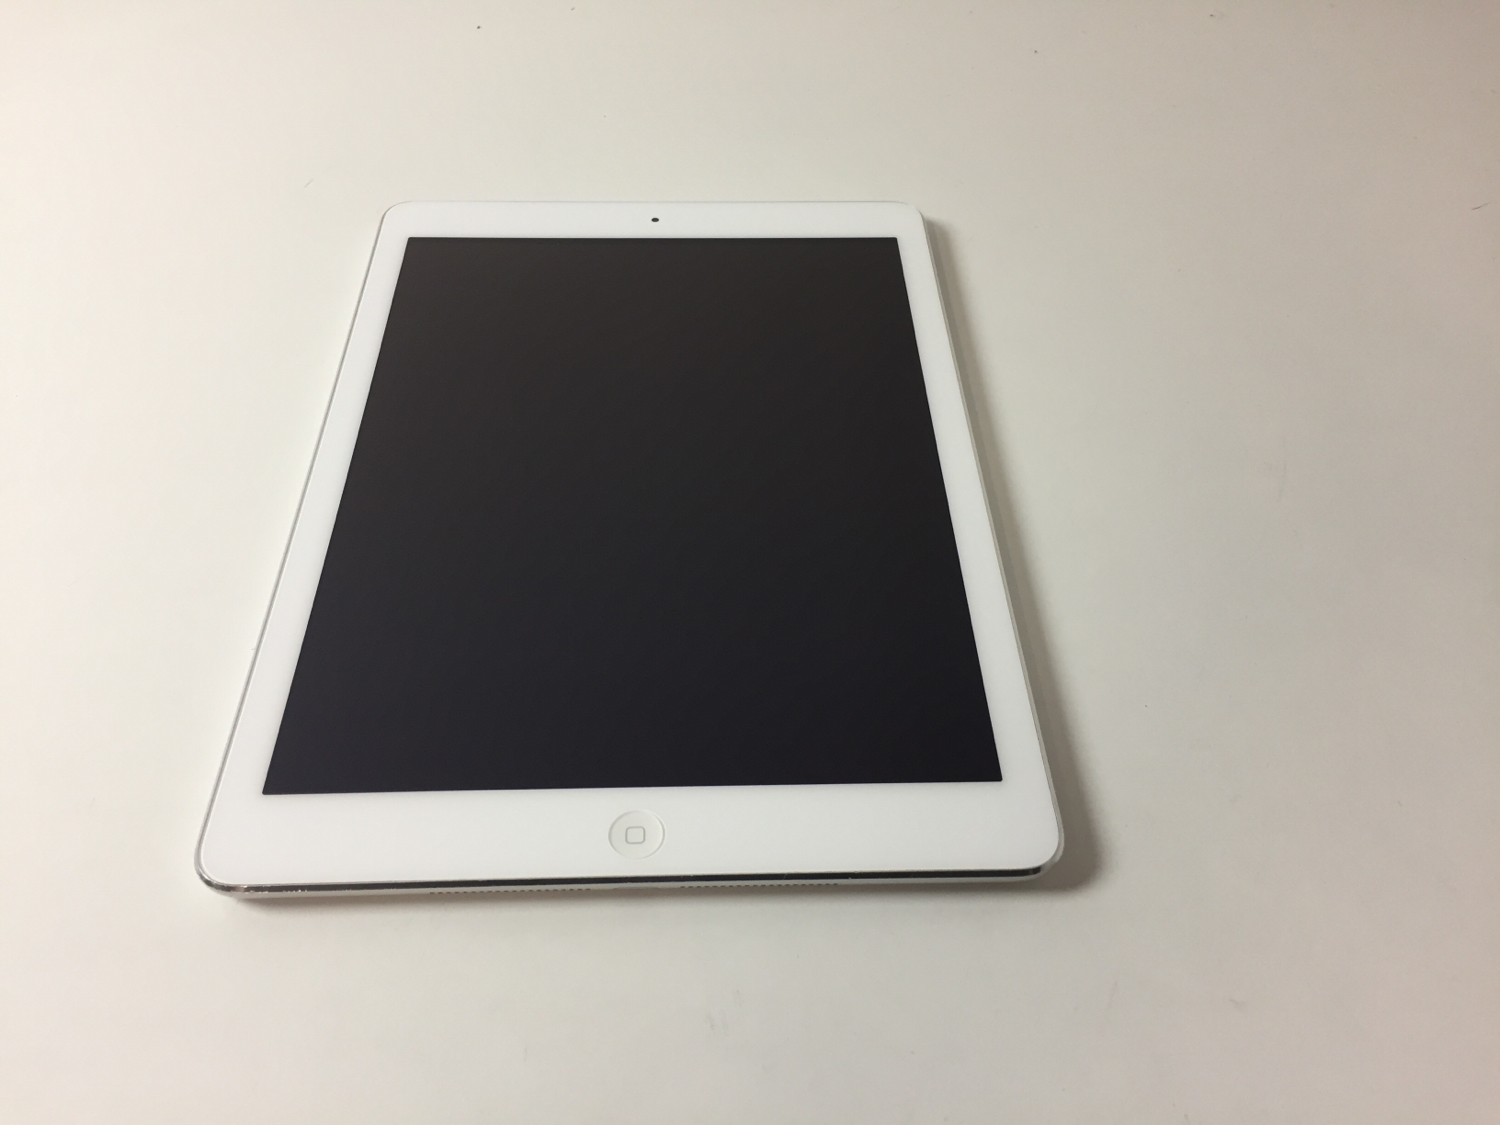 iPad Air Wi-Fi 16GB, 16GB, Silver, bild 1